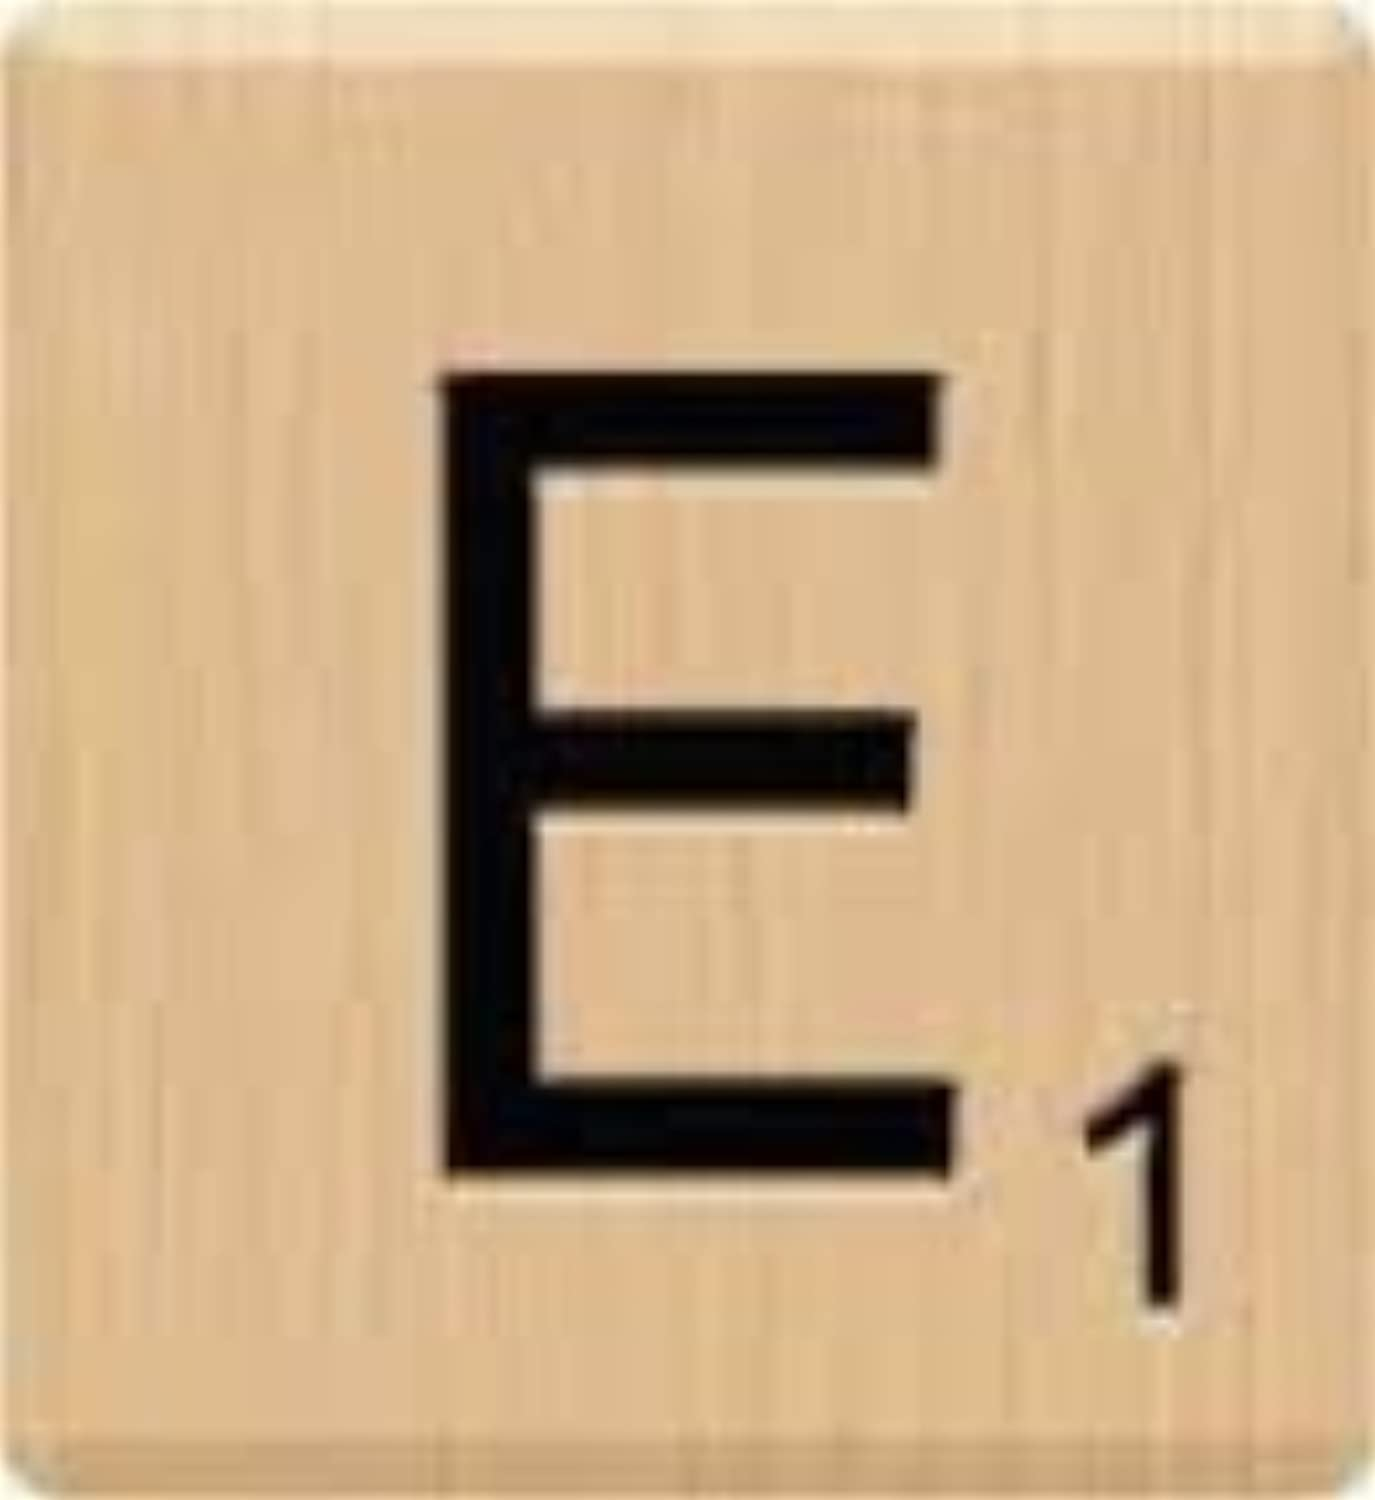 (10) BEAUTIFUL Scrabble Letter E Tiles, Scrabble, Crafts, Scrabble Game Piece E, 10 Letter E, Hardwood, Individual Scrabble Tiles, A to Z In Stock